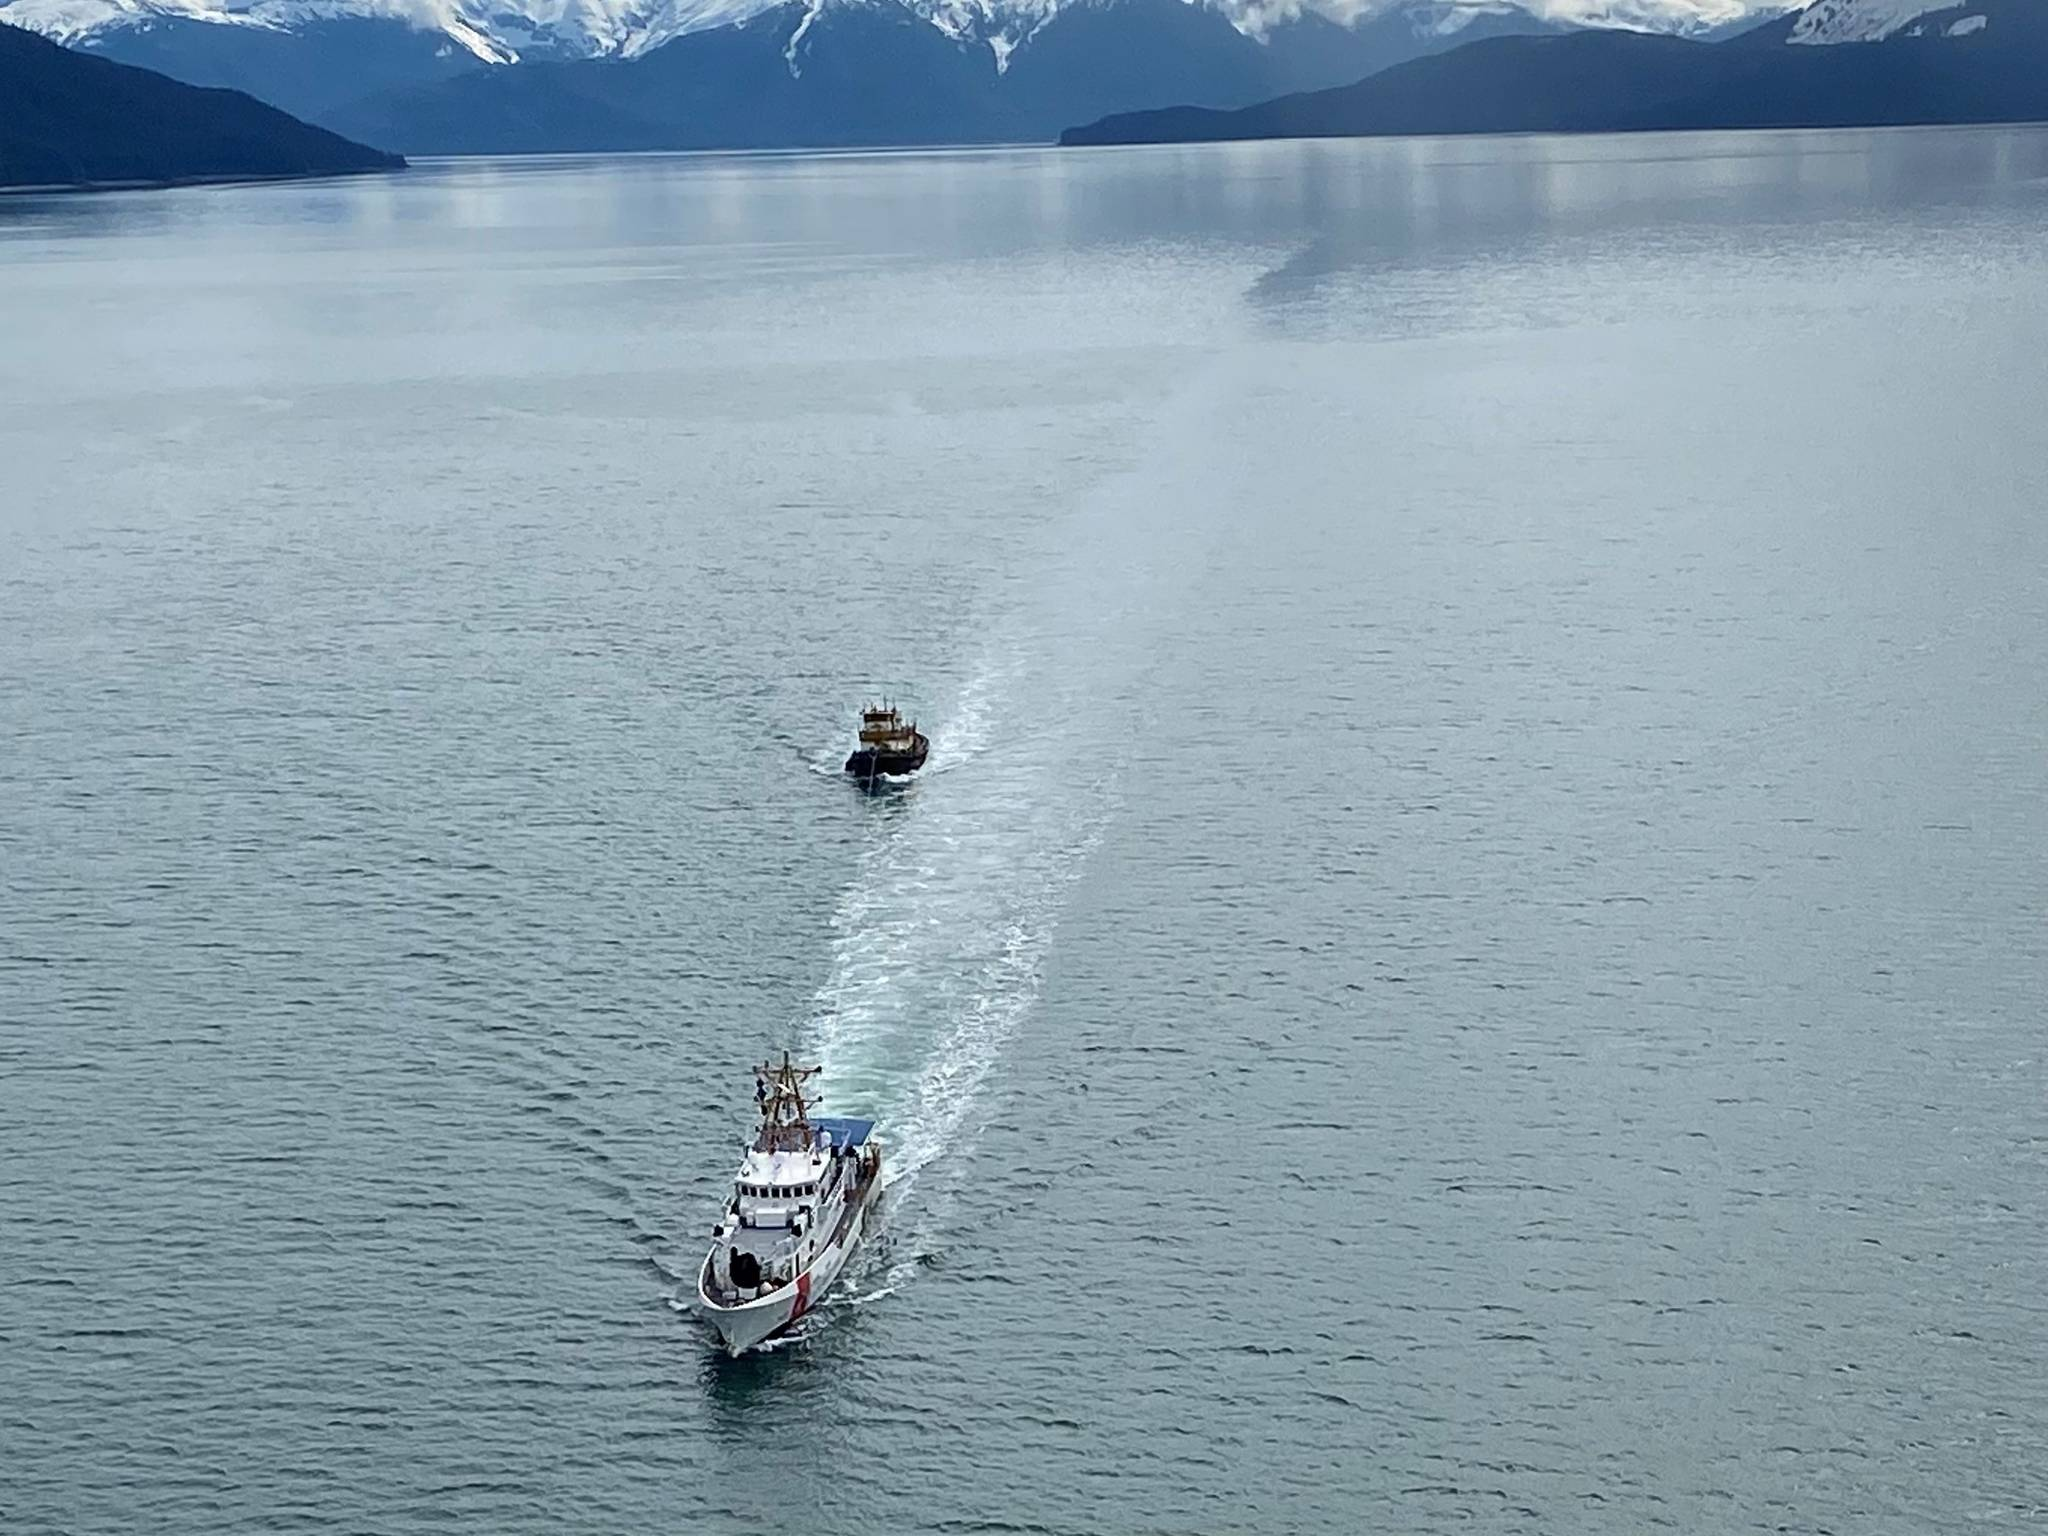 Coast Guard Cutter John McCormick, a 154-foot Sentinel–class vessel, towed the derelict tugboat Lumberman, to a position 54 miles west of Cross Sound, Alaska, on May 2, 2021. The decision to dispose of the Lumberman at sea, which had been abandoned in the Gastineau channel in 2016, was made after it was determined to be derelict and posed a significant public safety risk. (Courtesy photo / U.S. Coast Guard)